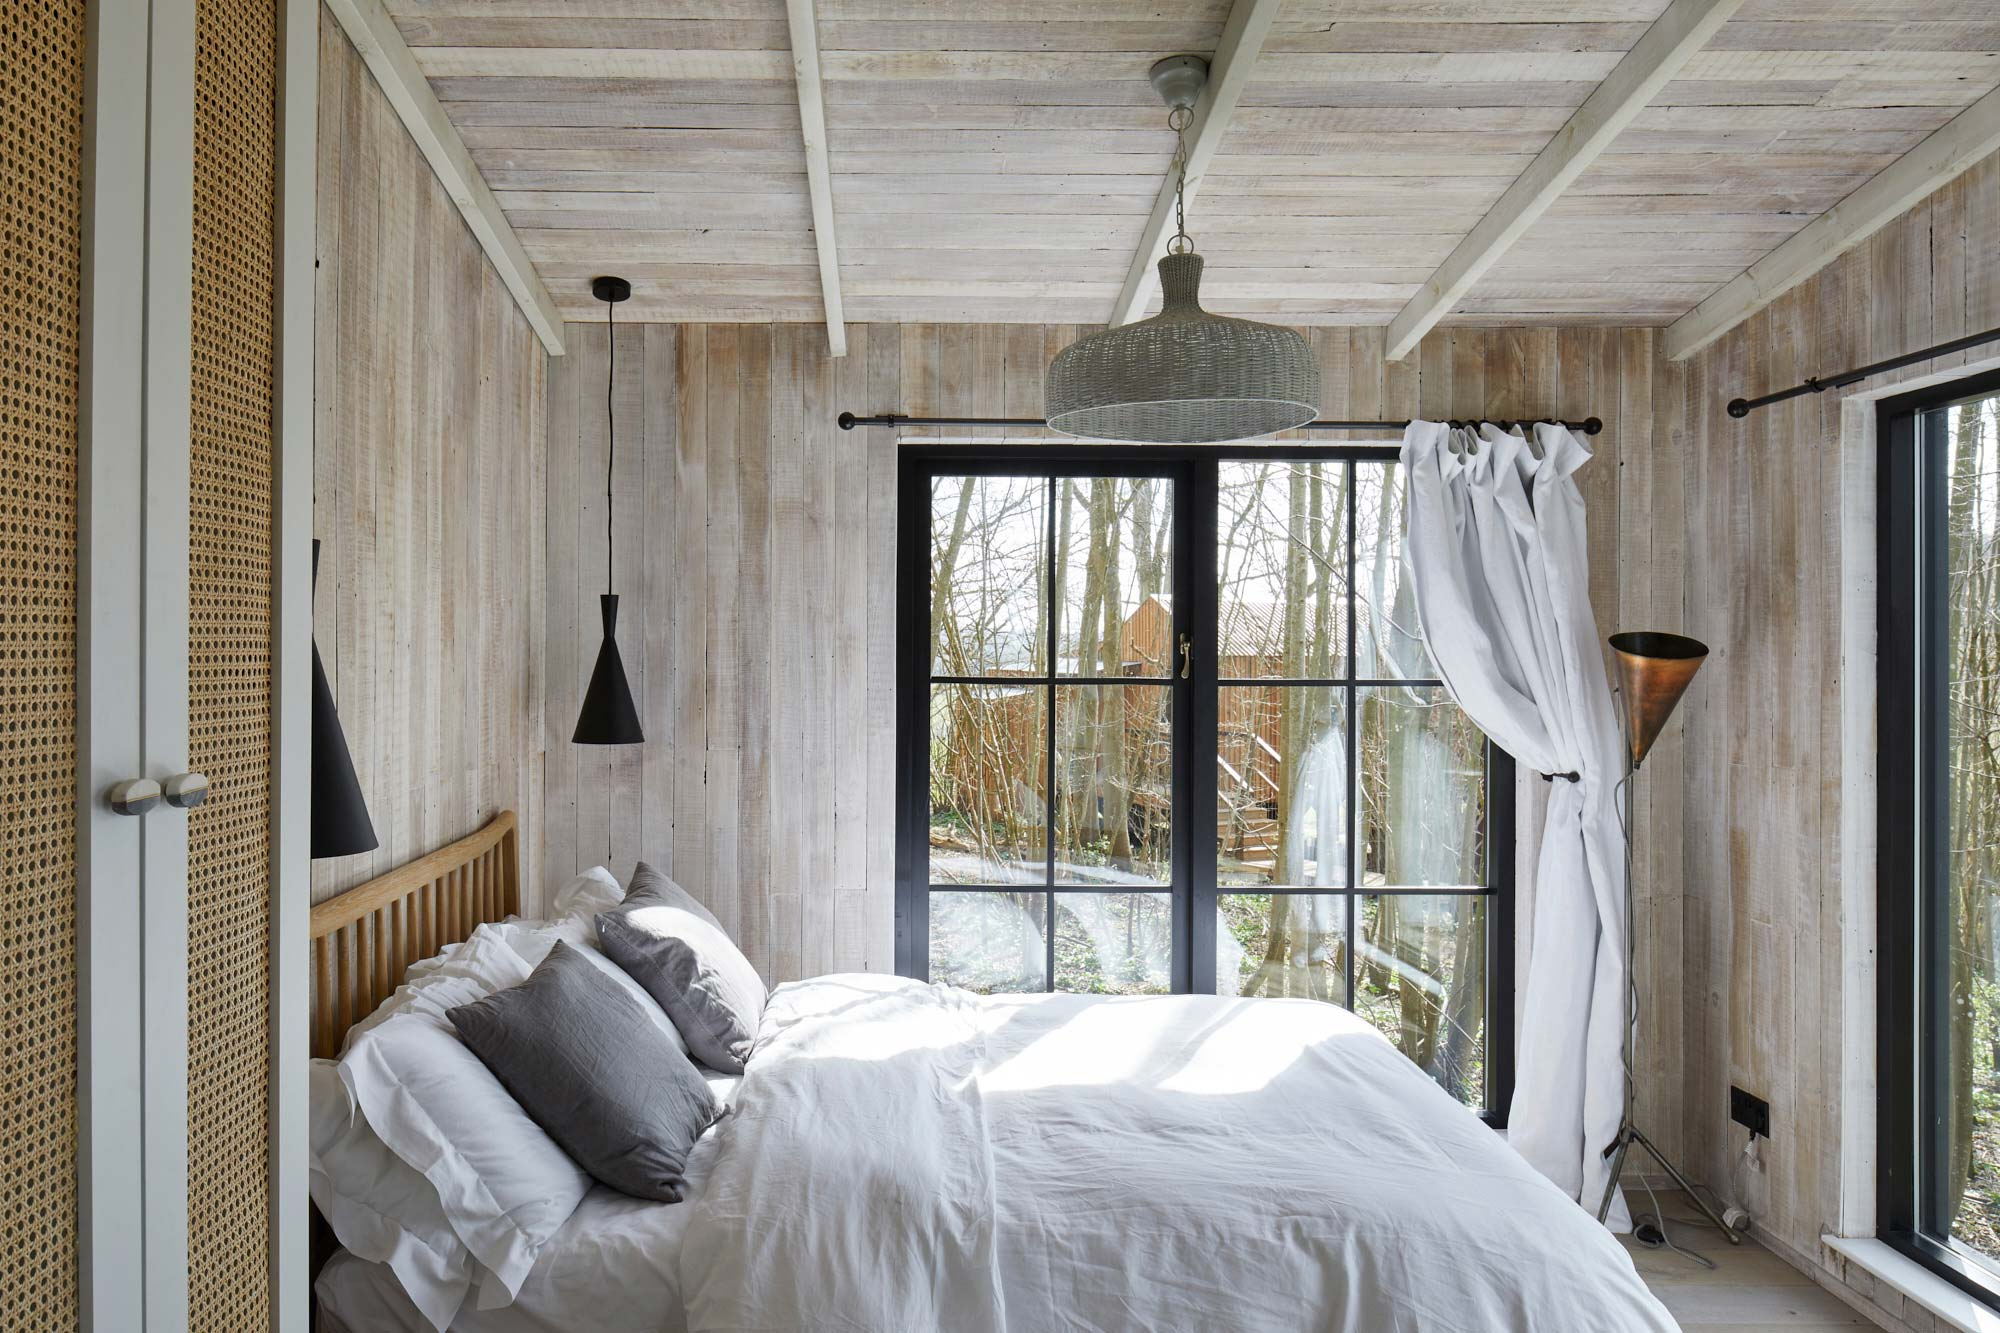 Wild Escapes treehouse cladded in rustic wood cladding